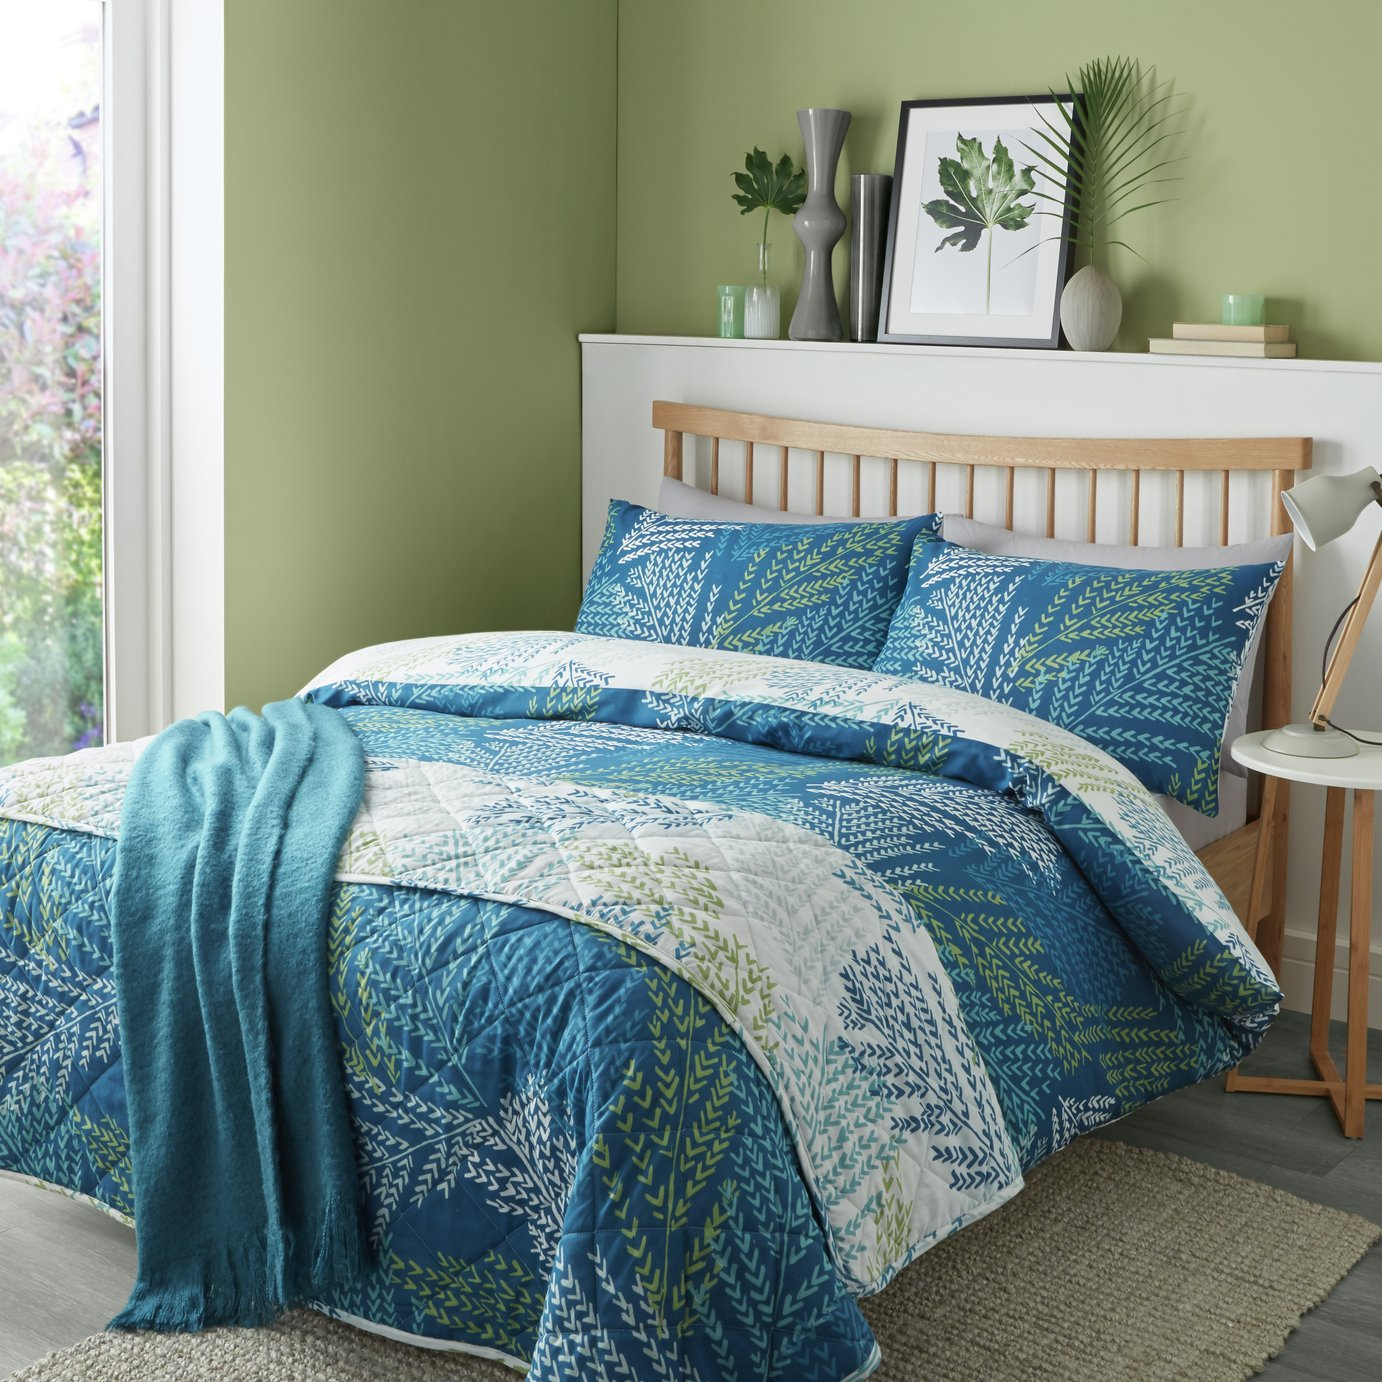 Image of Fusion Alena Teal Bedding Set - Kingsize